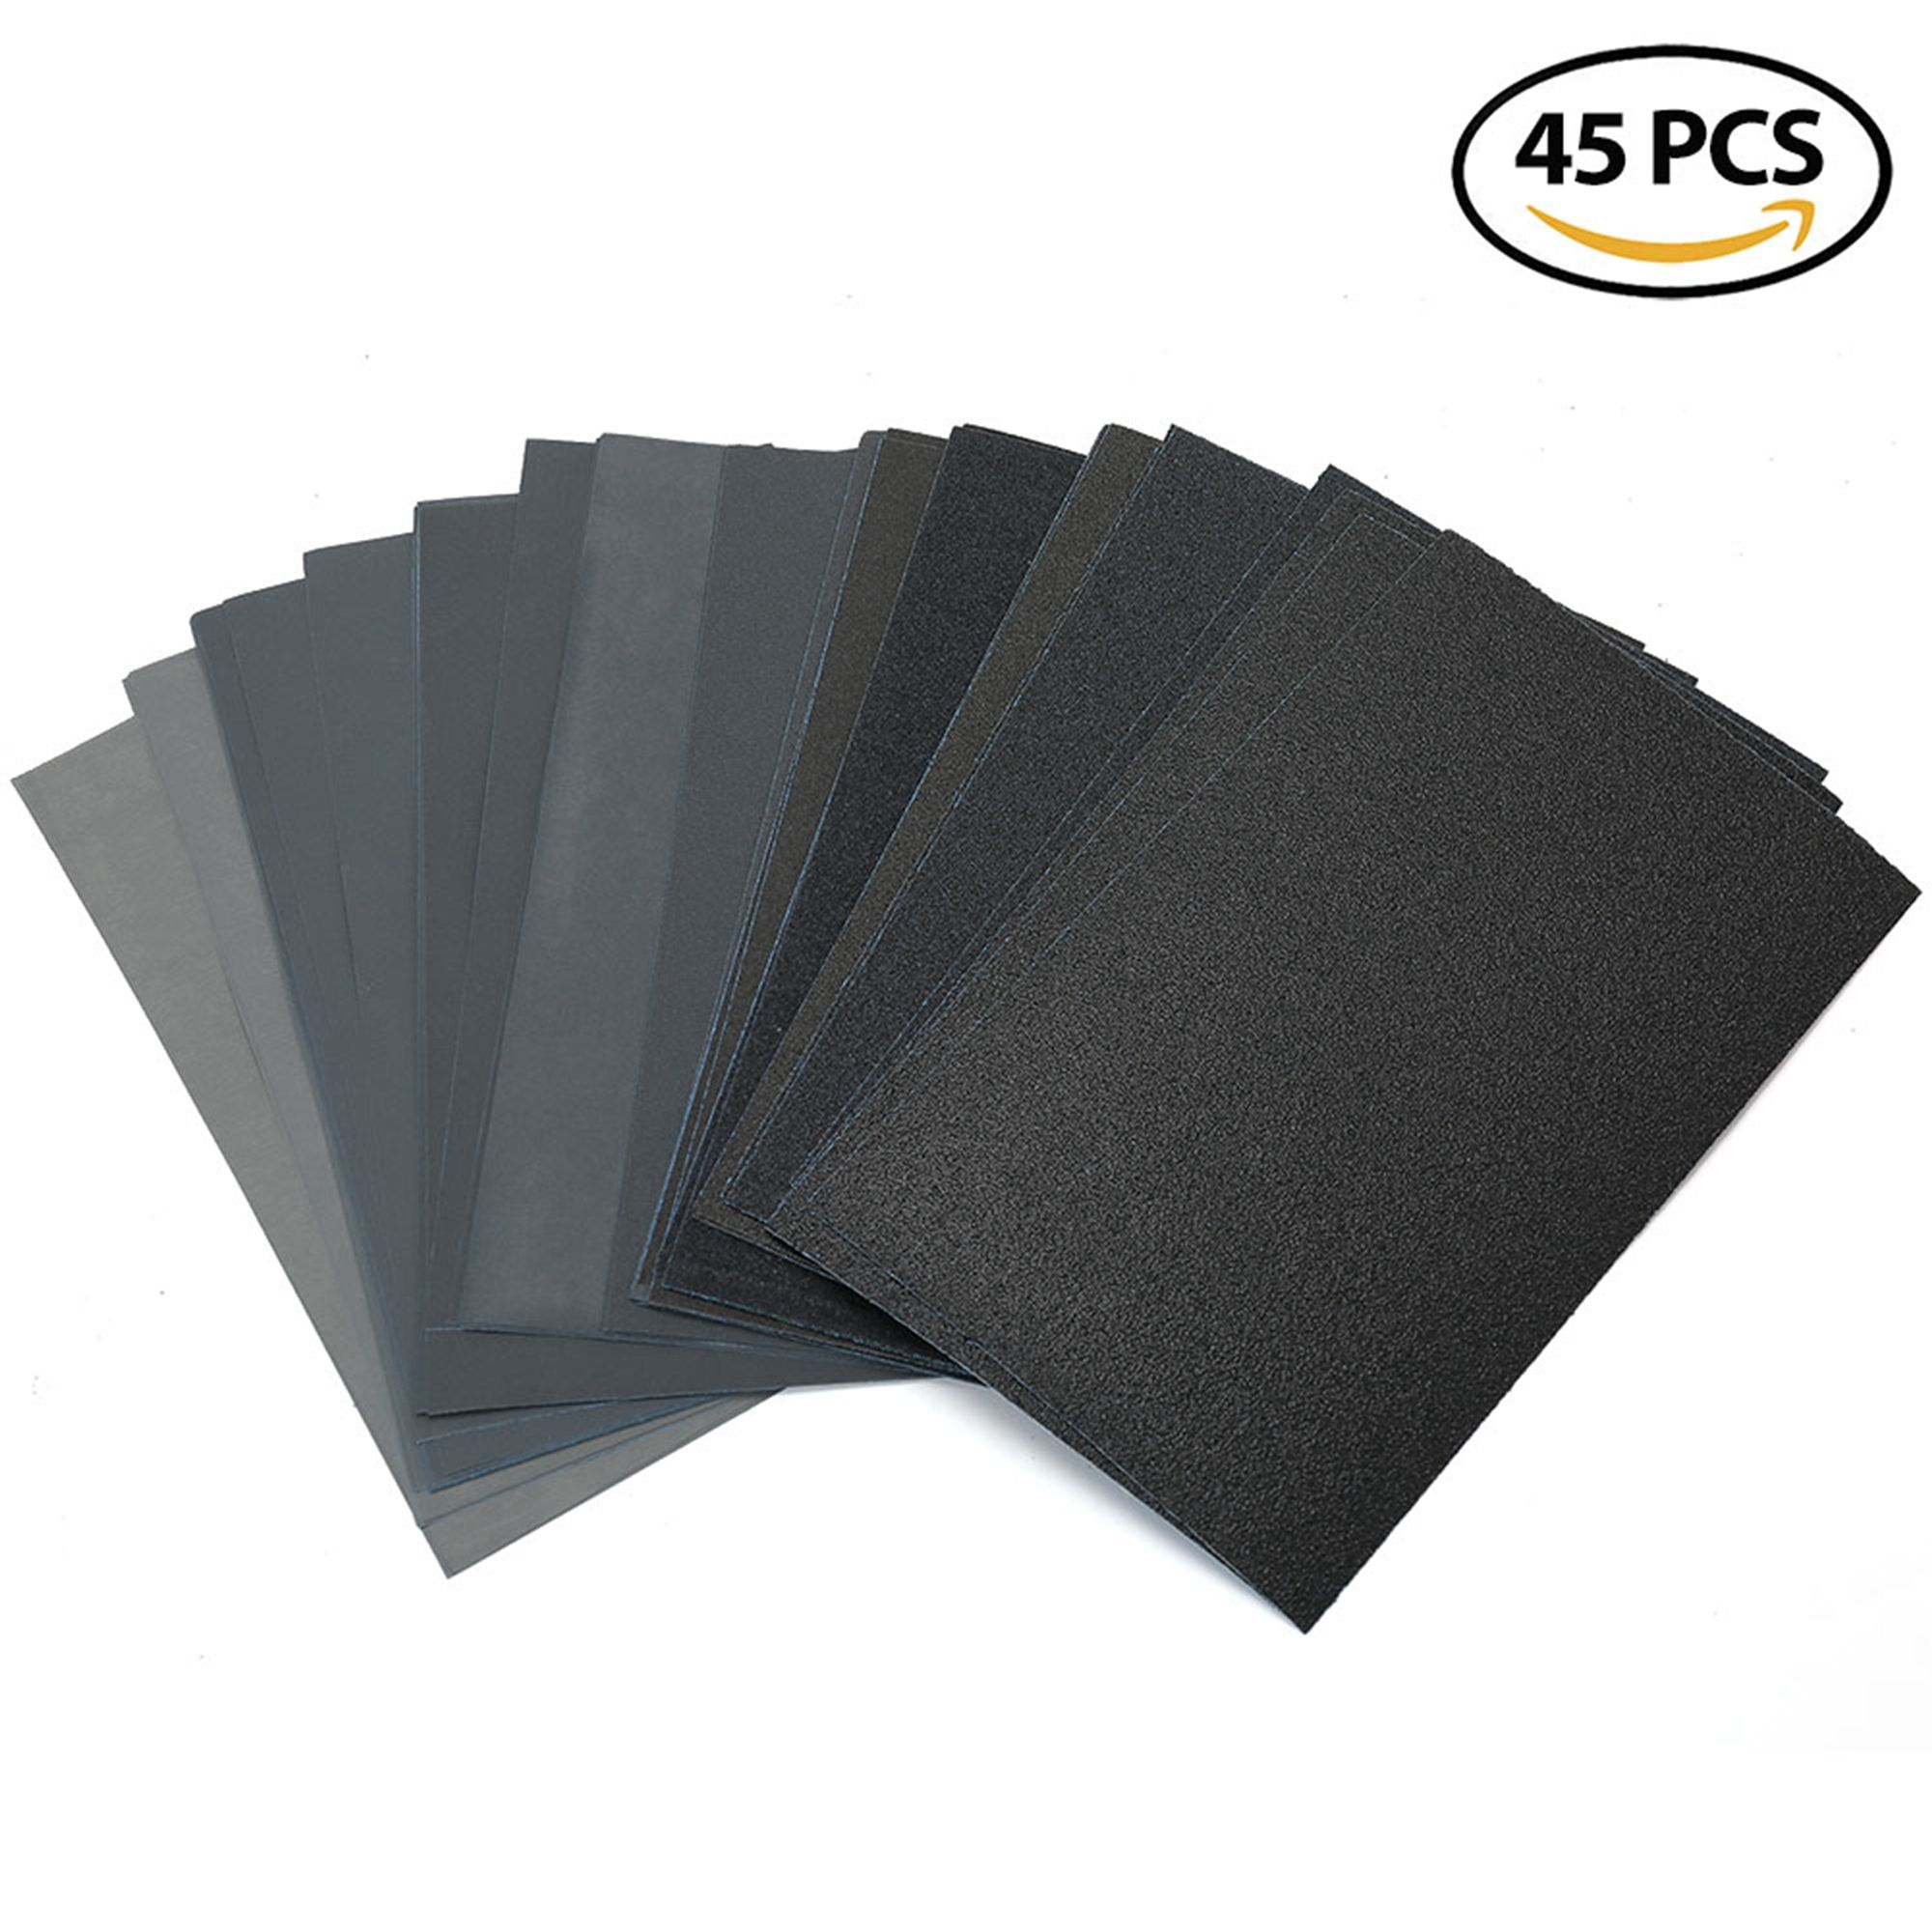 "80 to 3000 Grit Dry Wet Sandpaper Assortment - 9 x 5.5"" Silicon Carbide Sandpaper Sheets for Metal Sanding, Automotive Polishing, Wood Furniture, Wood Turing Finishing, Pack of 45"